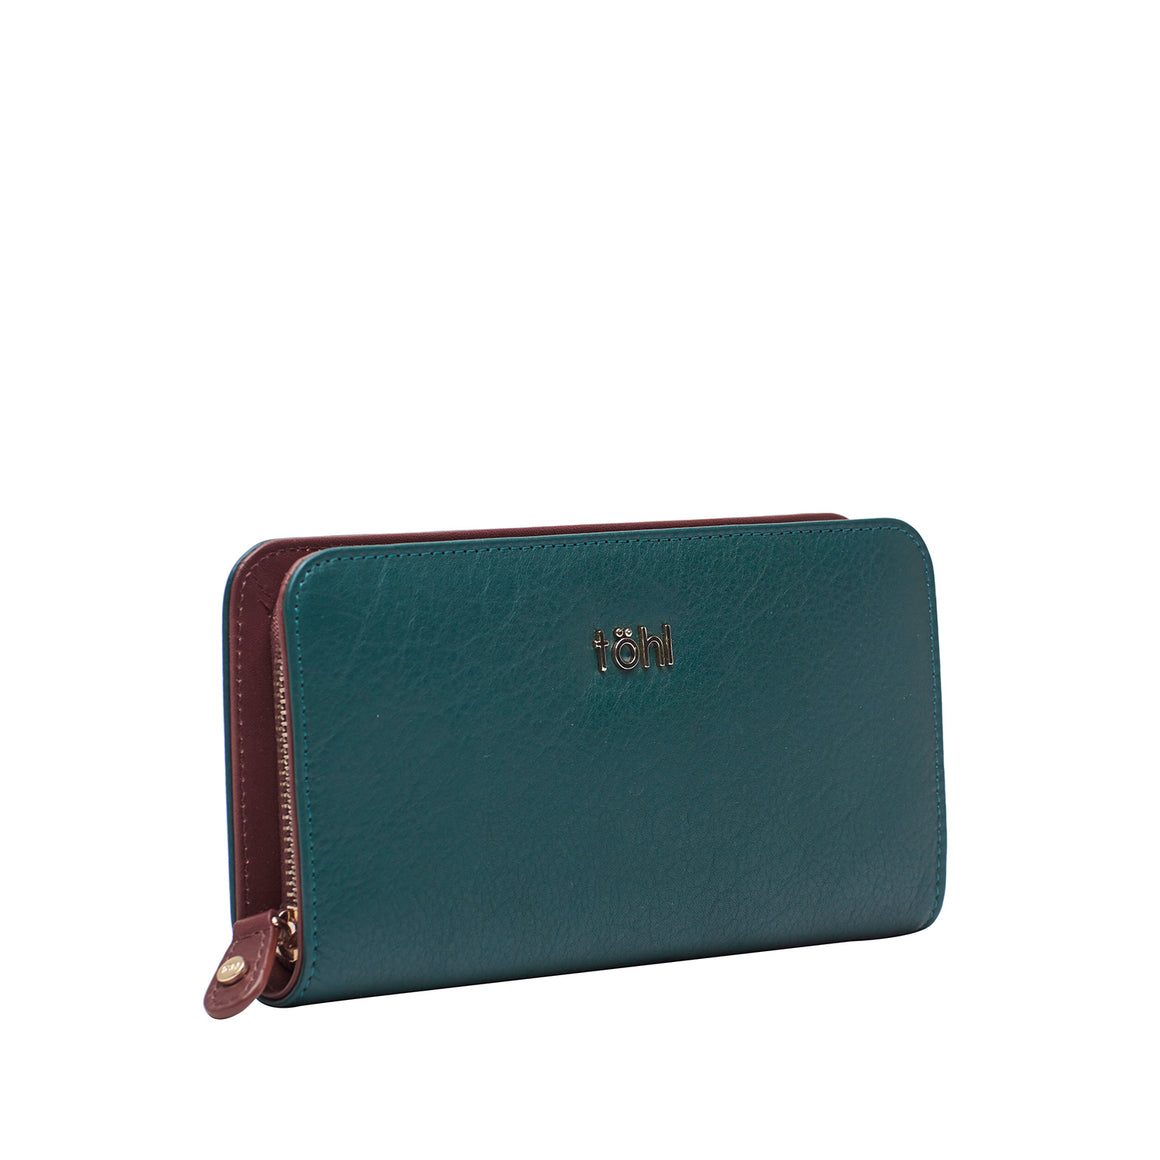 WT 0018 - TOHL BRITTON WOMEN'S  WALLET - FOREST GREEN